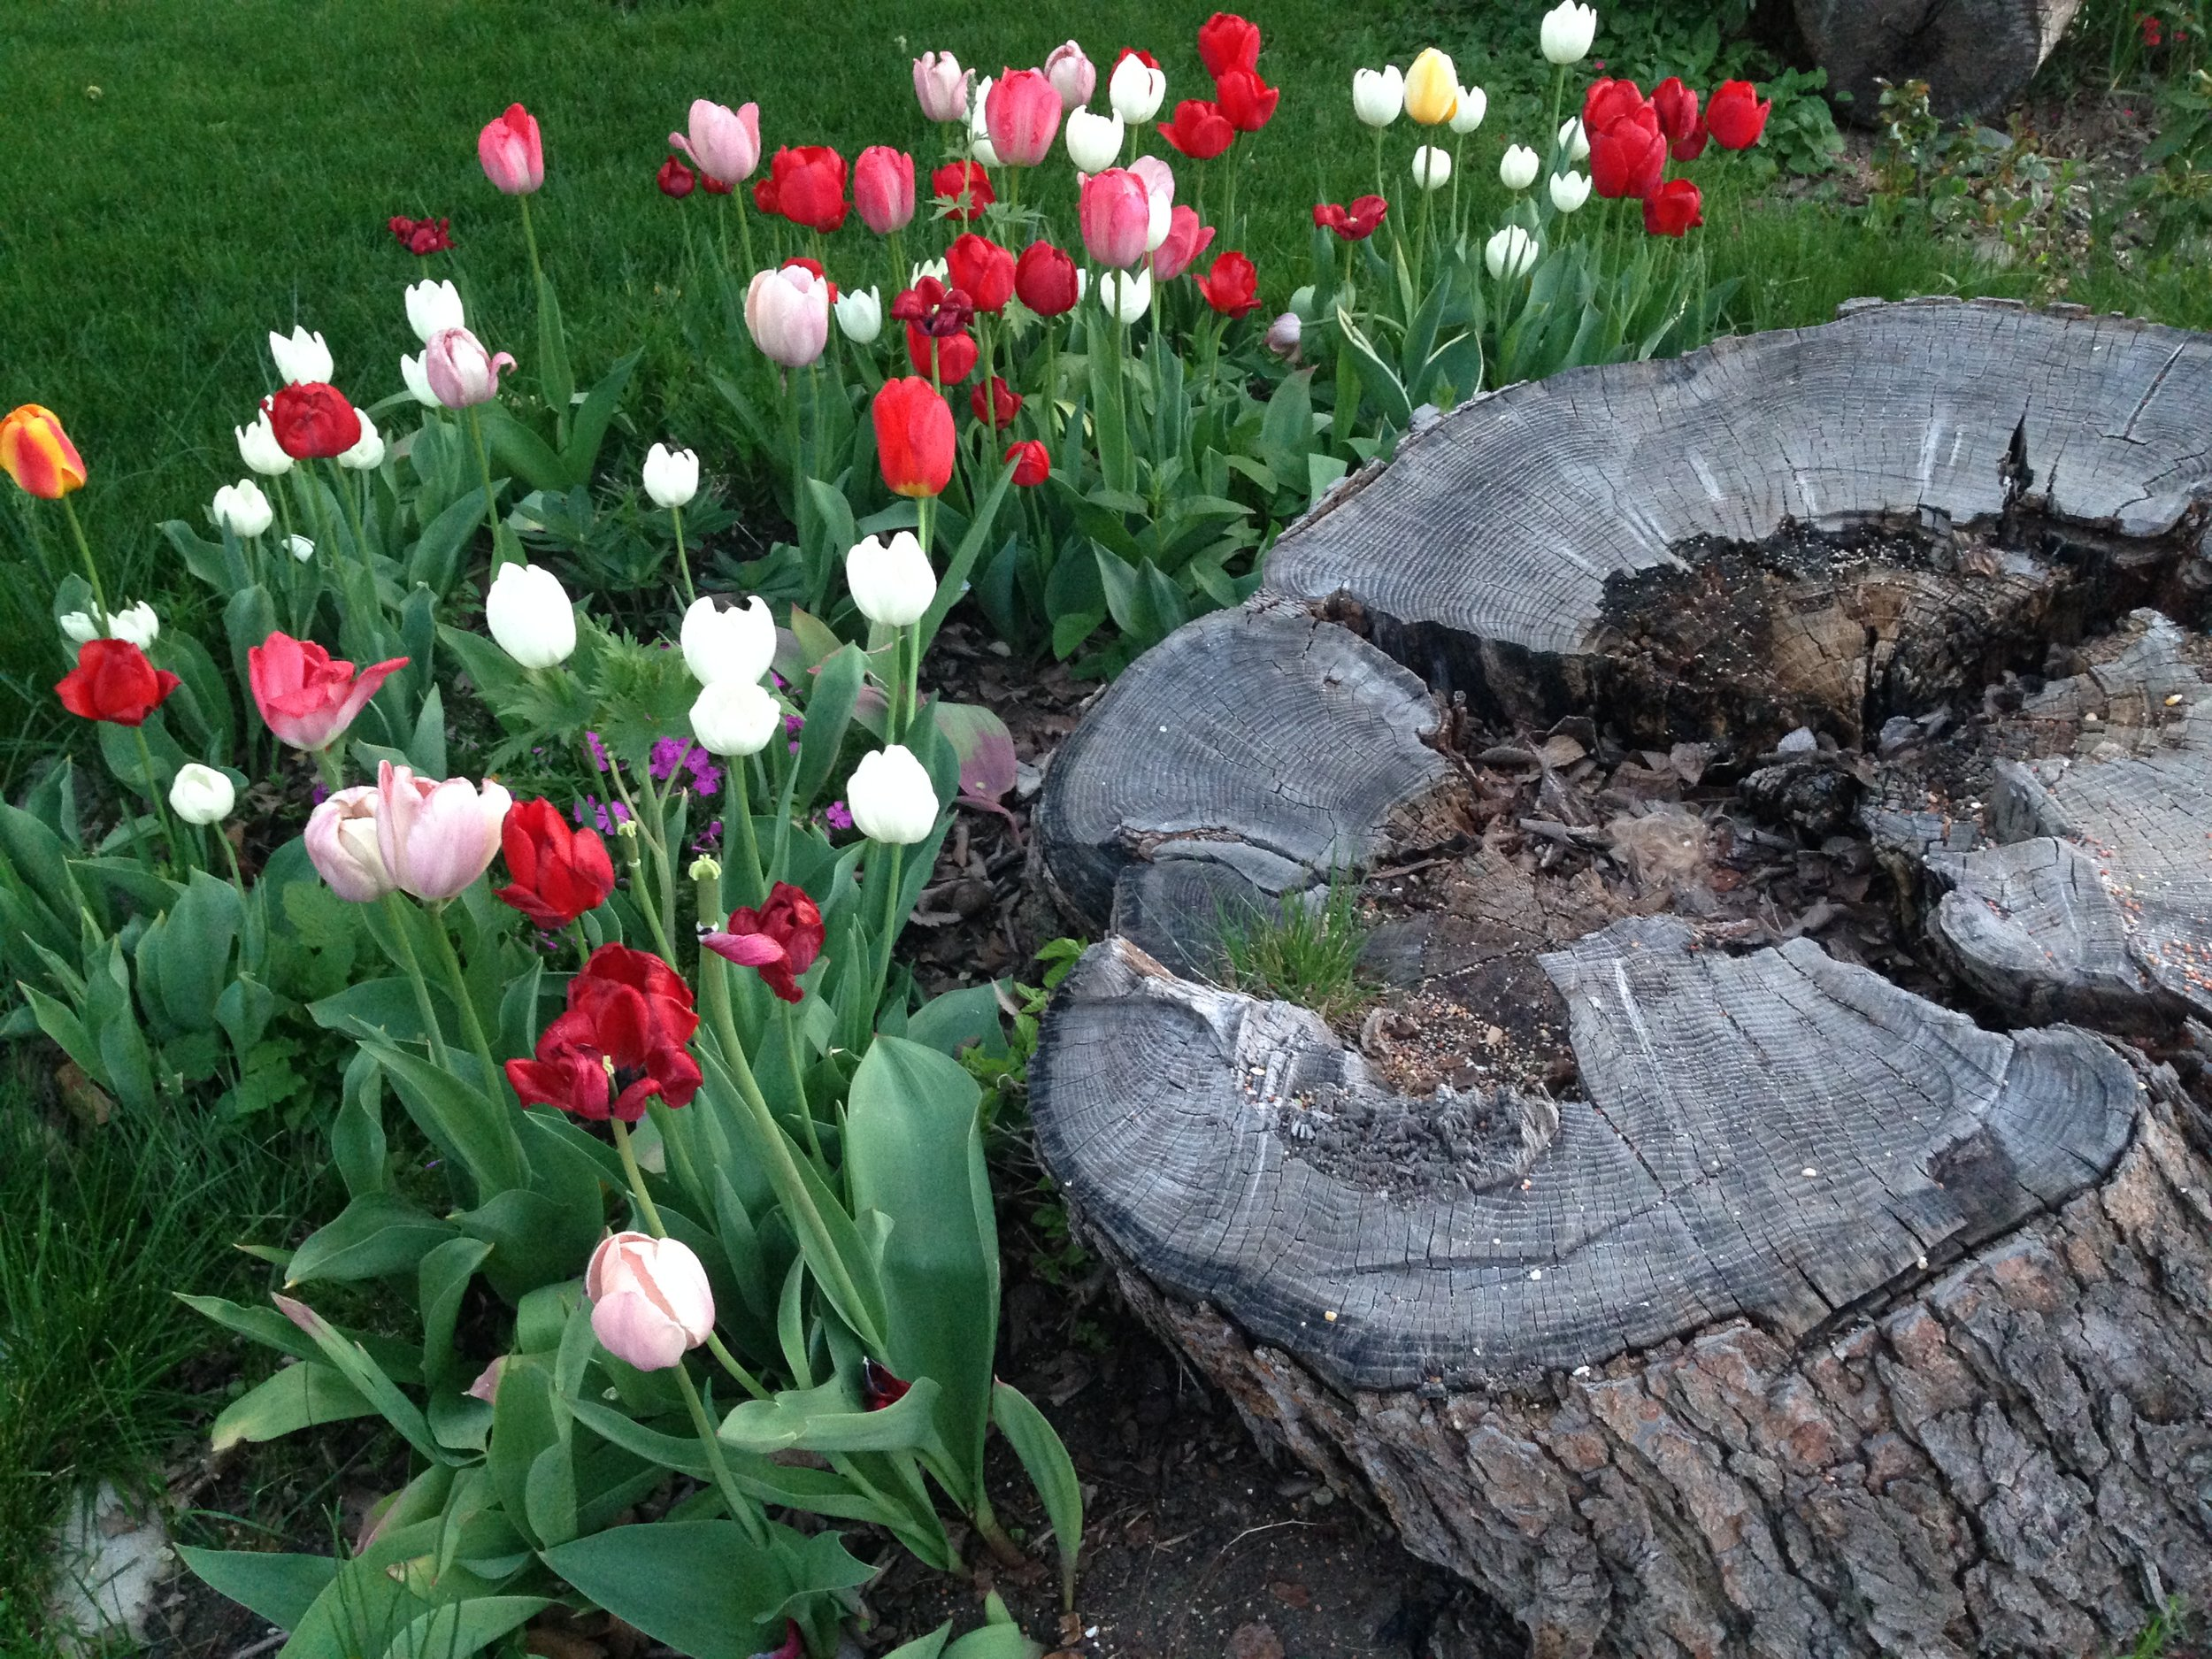 Spring tulips exhibit a desire to grow beside a tree stump in Boise's North End.